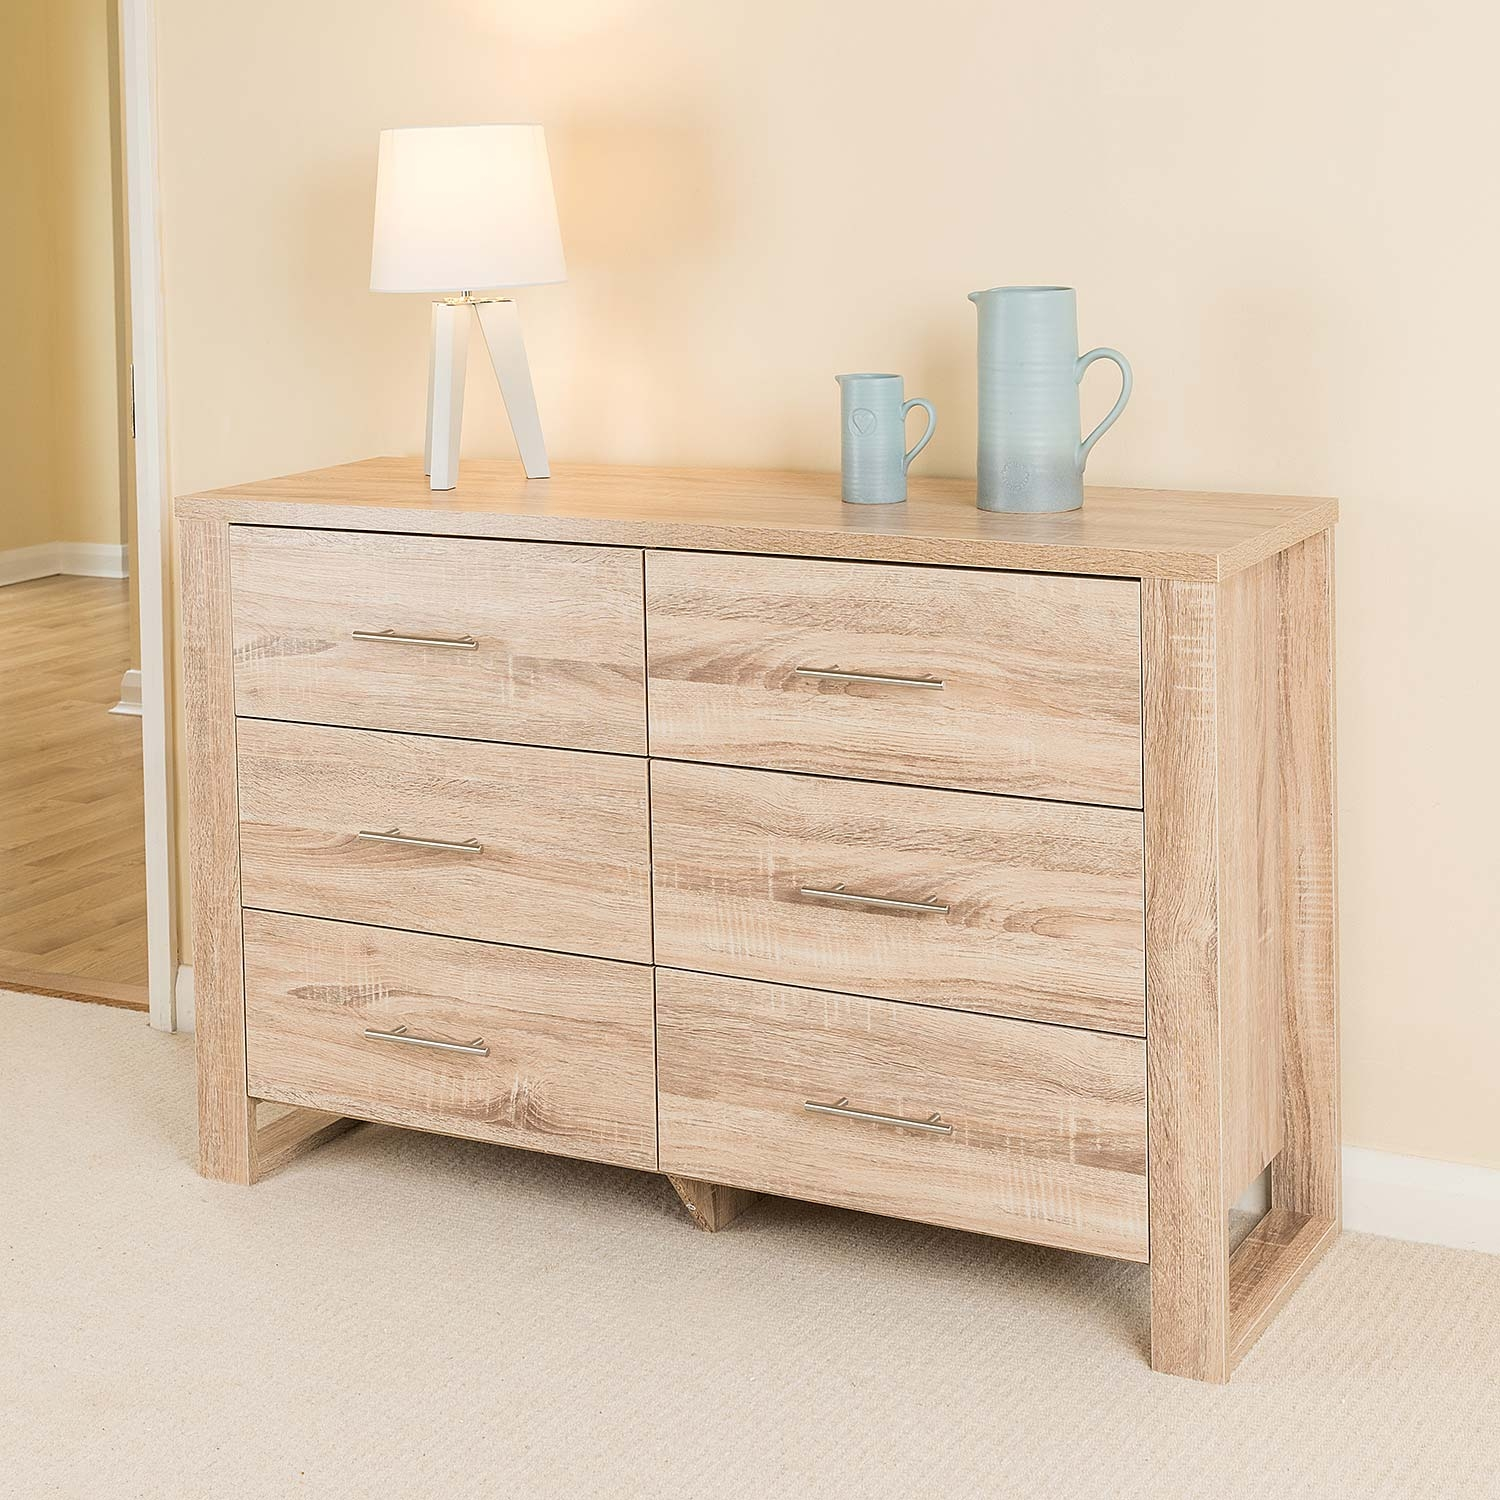 Image of Christow Oak Effect 6 Drawer Cabinet